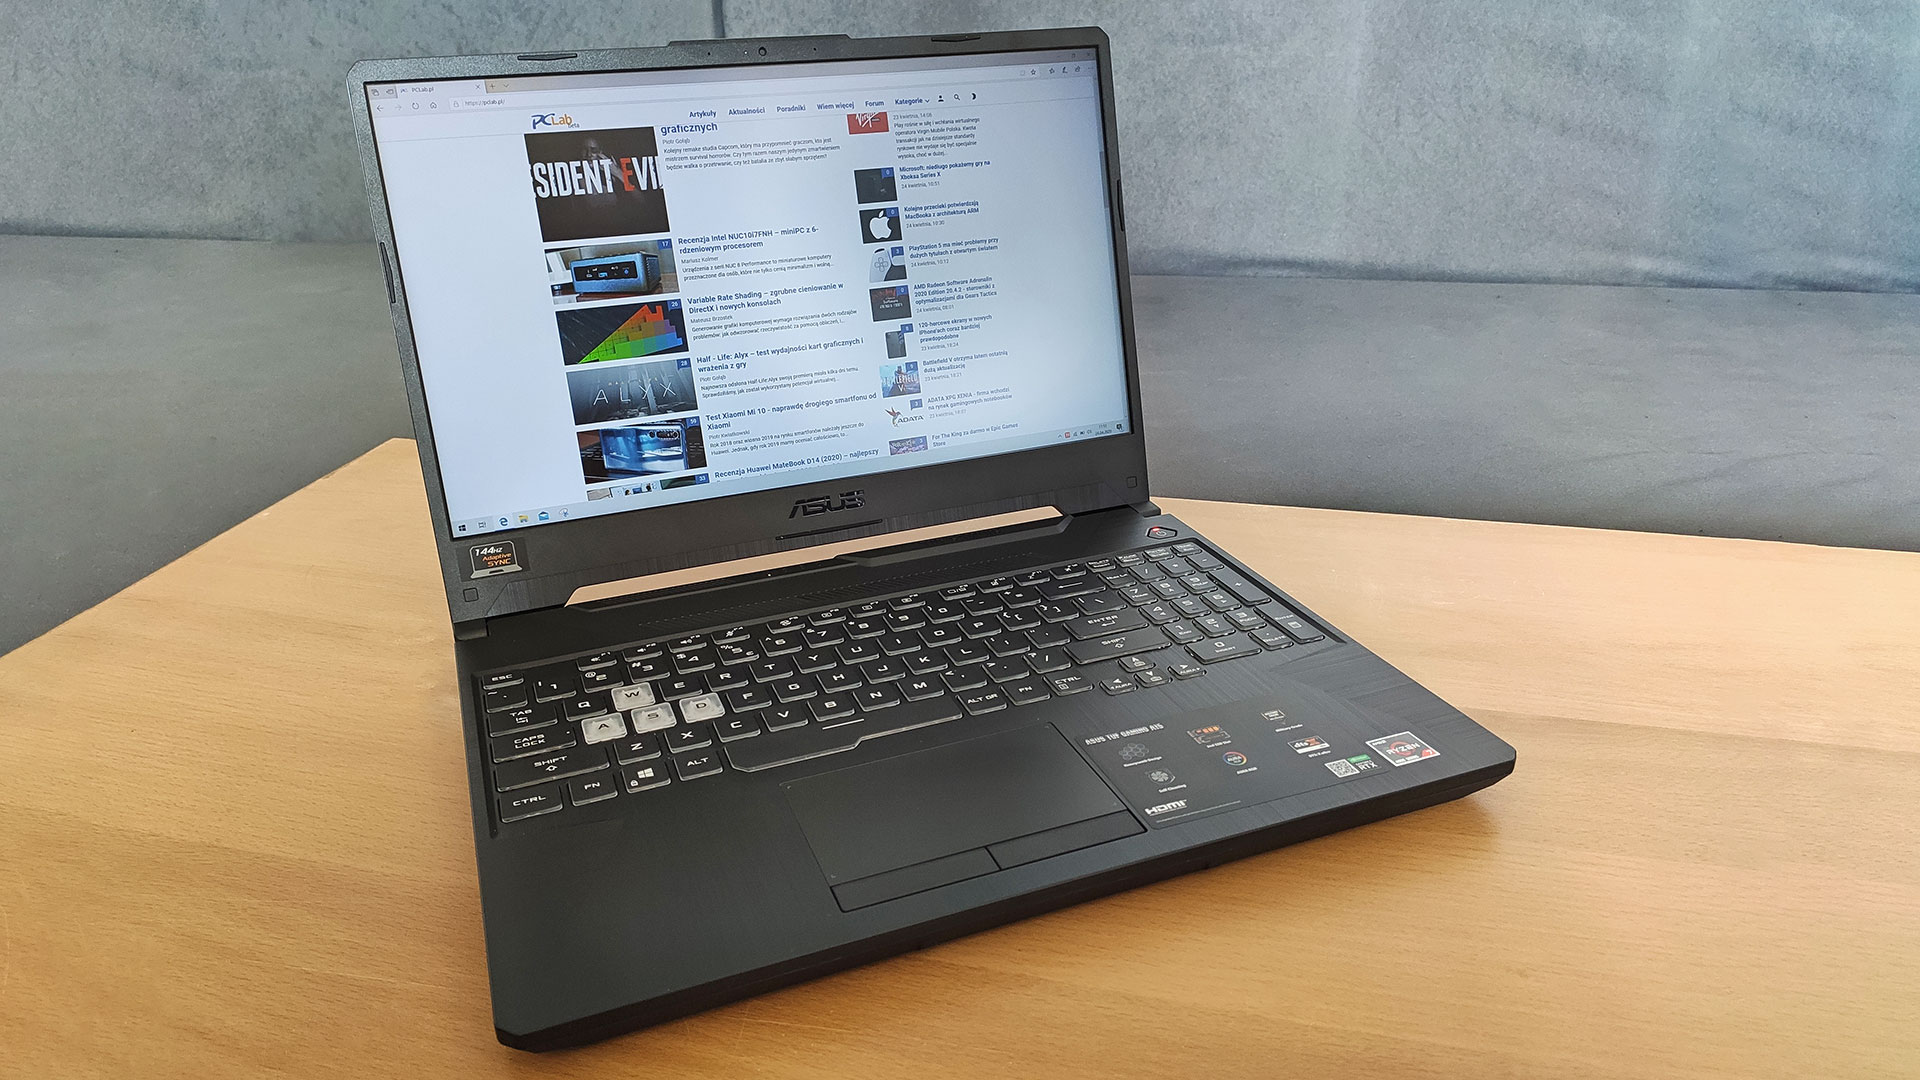 The most powerful gaming laptop